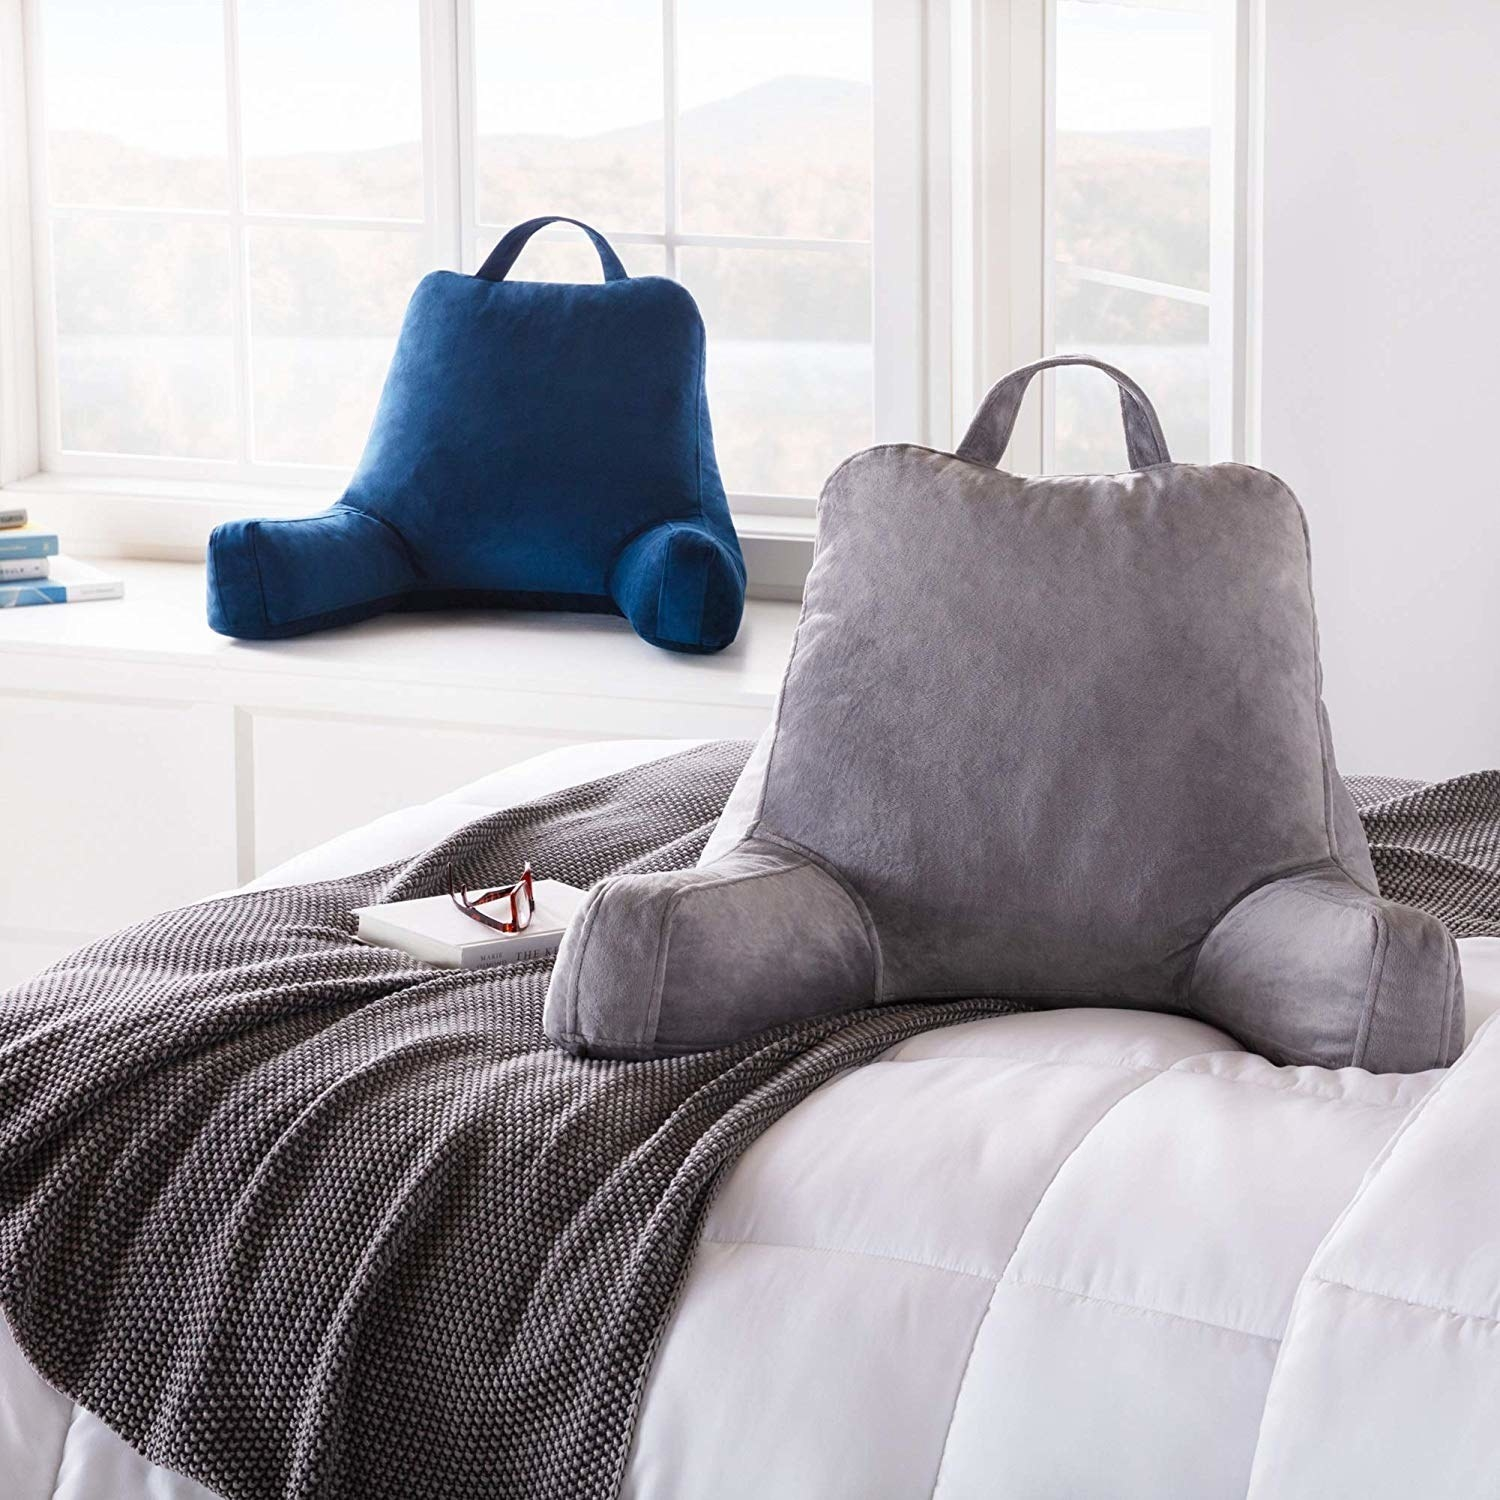 Two reading pillows in two colors